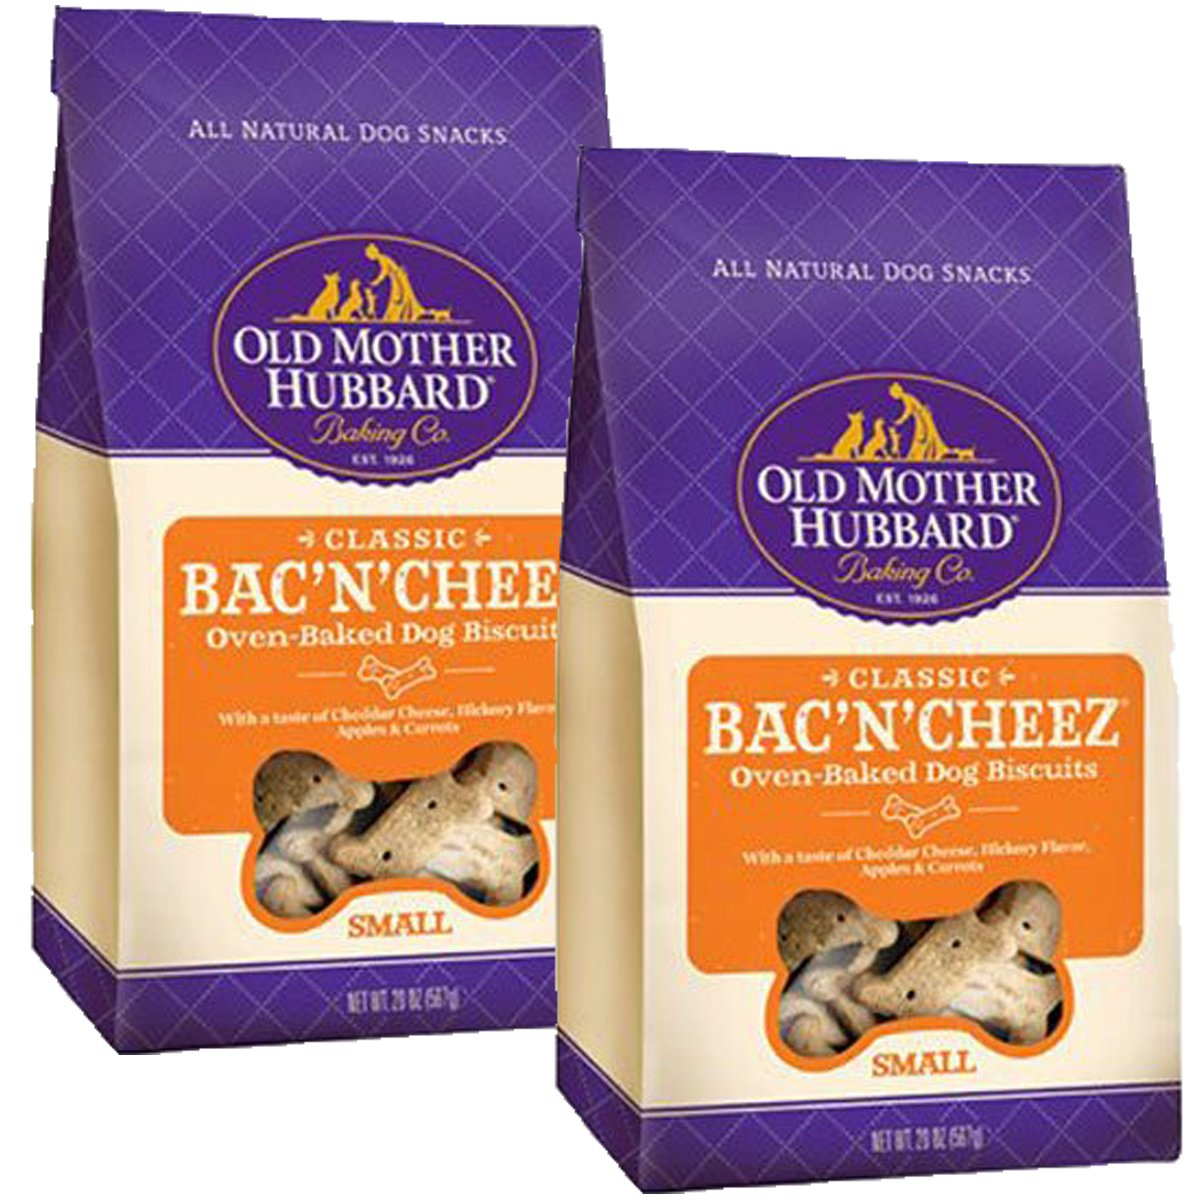 Old Mother Hubbard Classic Crunchy Natural Dog Treats, Bac'N'Cheez Small Biscuits, 20-Ounce Bag, Small Biscuits, 20-Ounce, 2 Bags